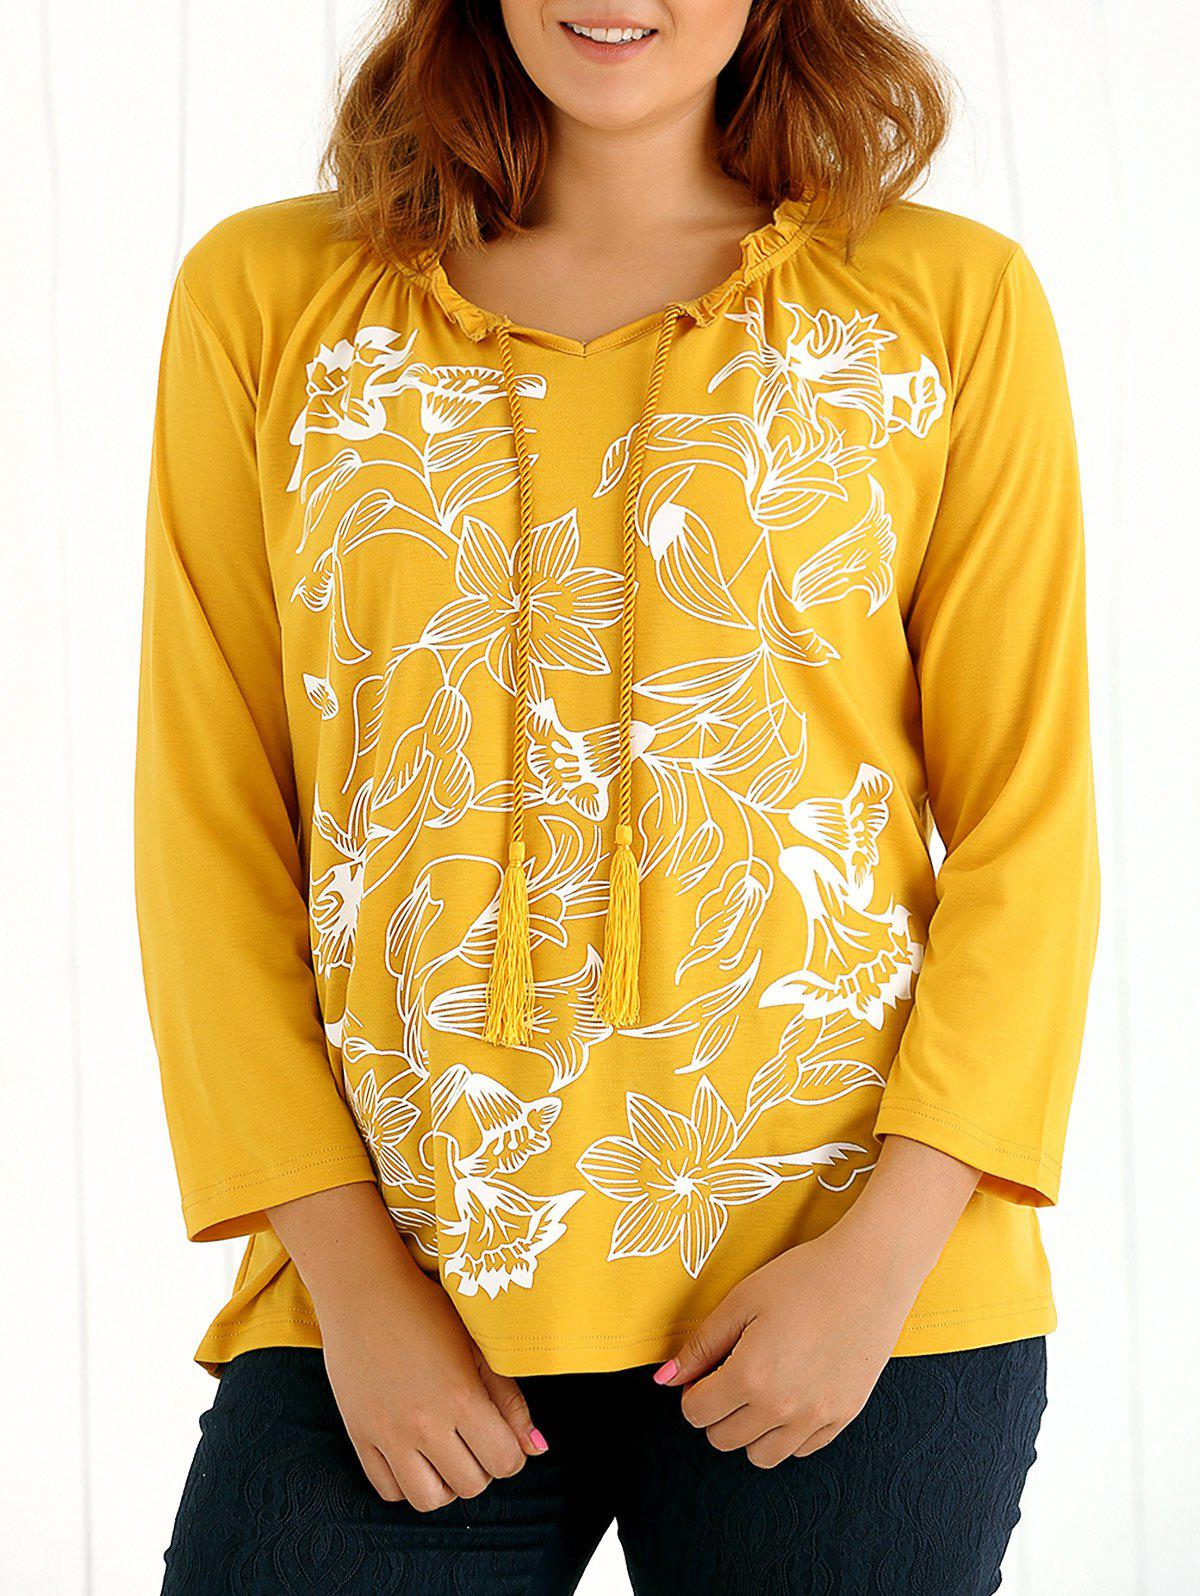 Long Sleeves Tassel Floral Print T-Shirt - YELLOW 4XL